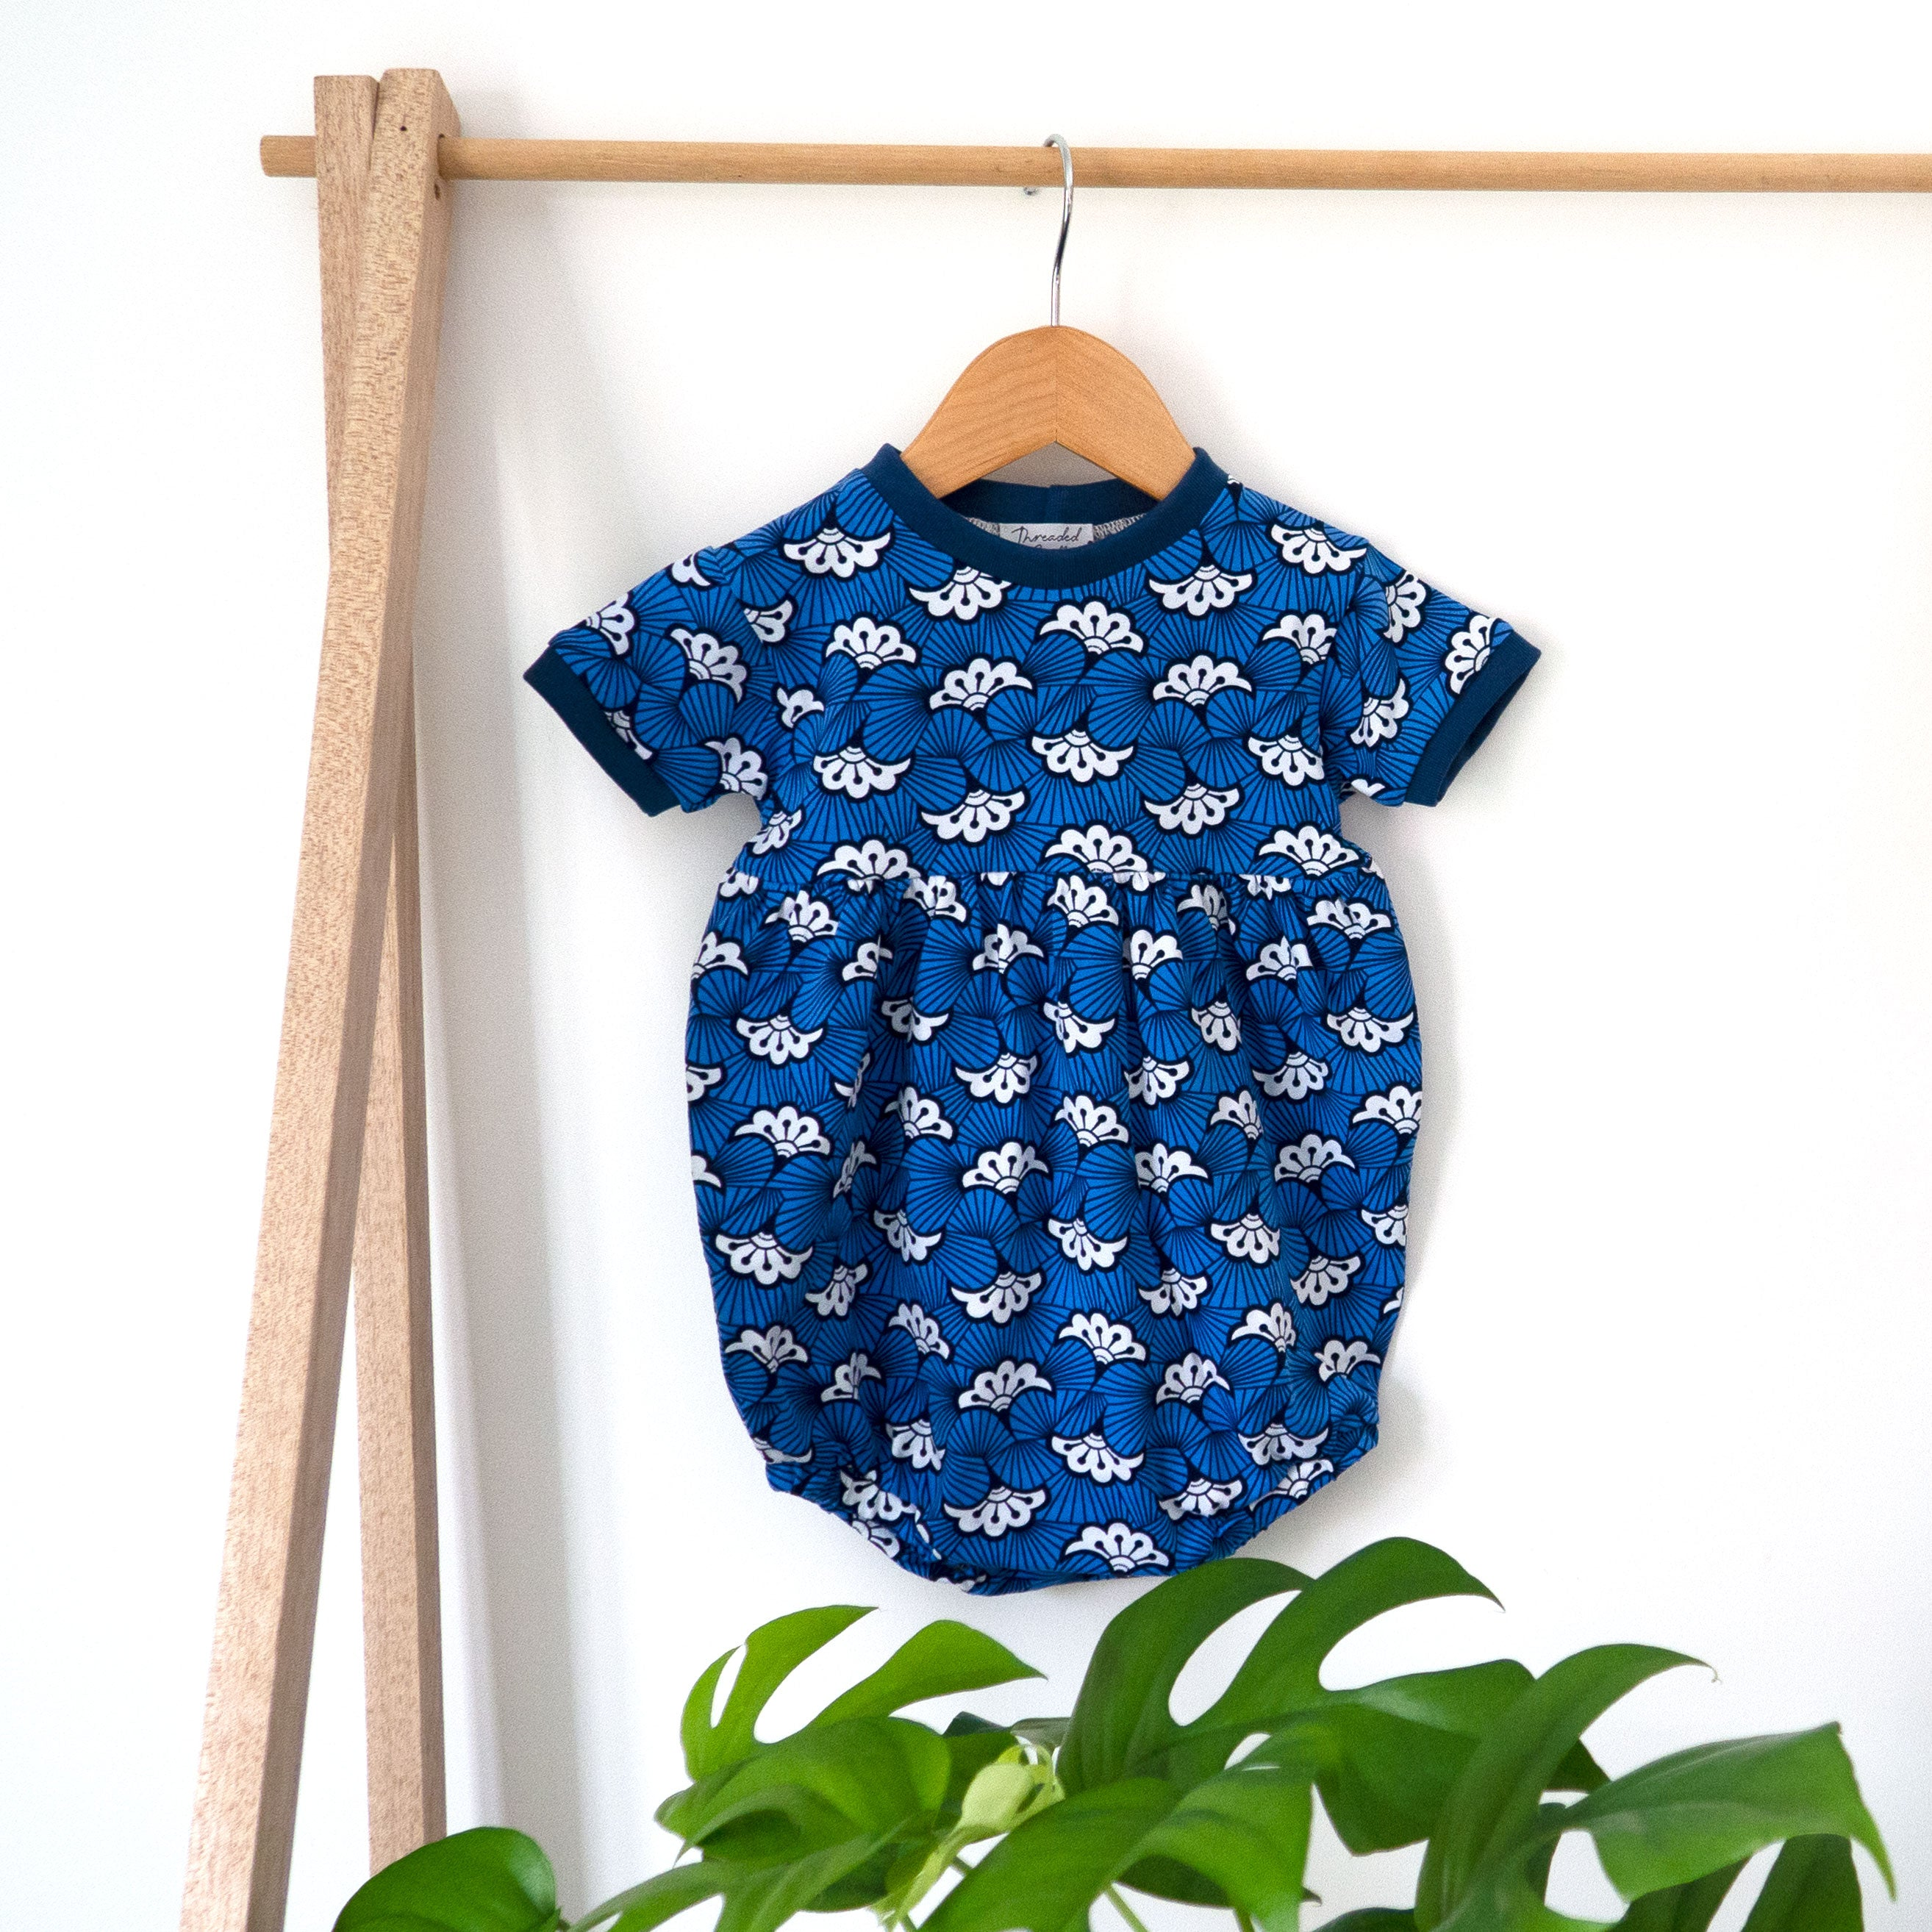 Hue of Blue Playsuit